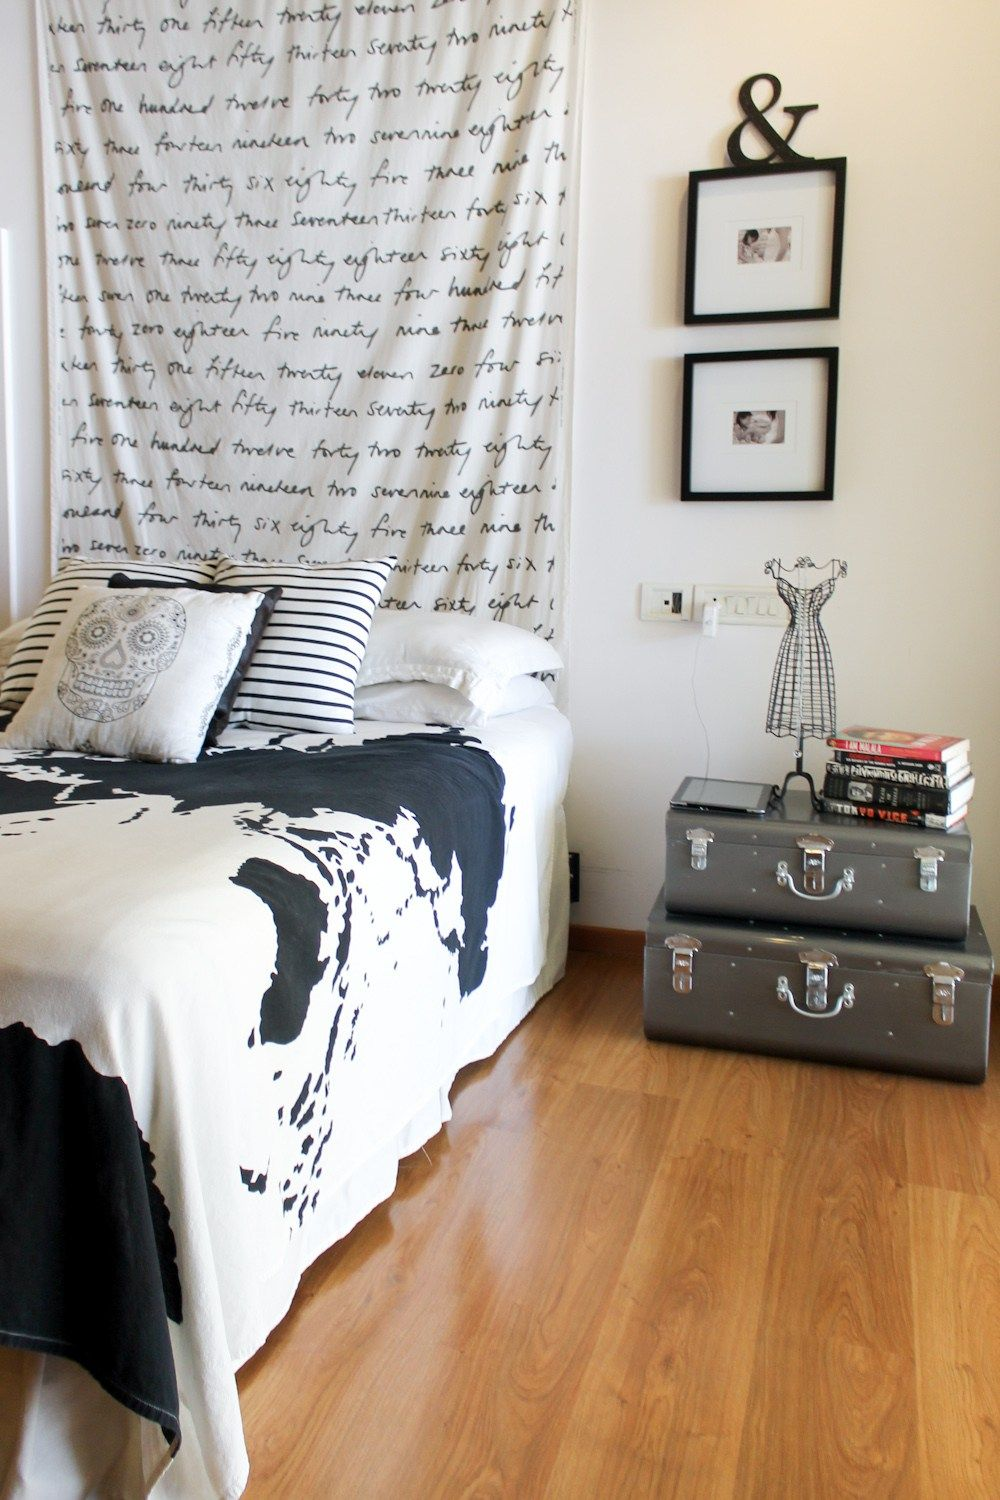 Black white bedroom with ikea fabric urban outfitters world map black white bedroom with ikea fabric urban outfitters world map tapestry indian metal trunks gumiabroncs Image collections